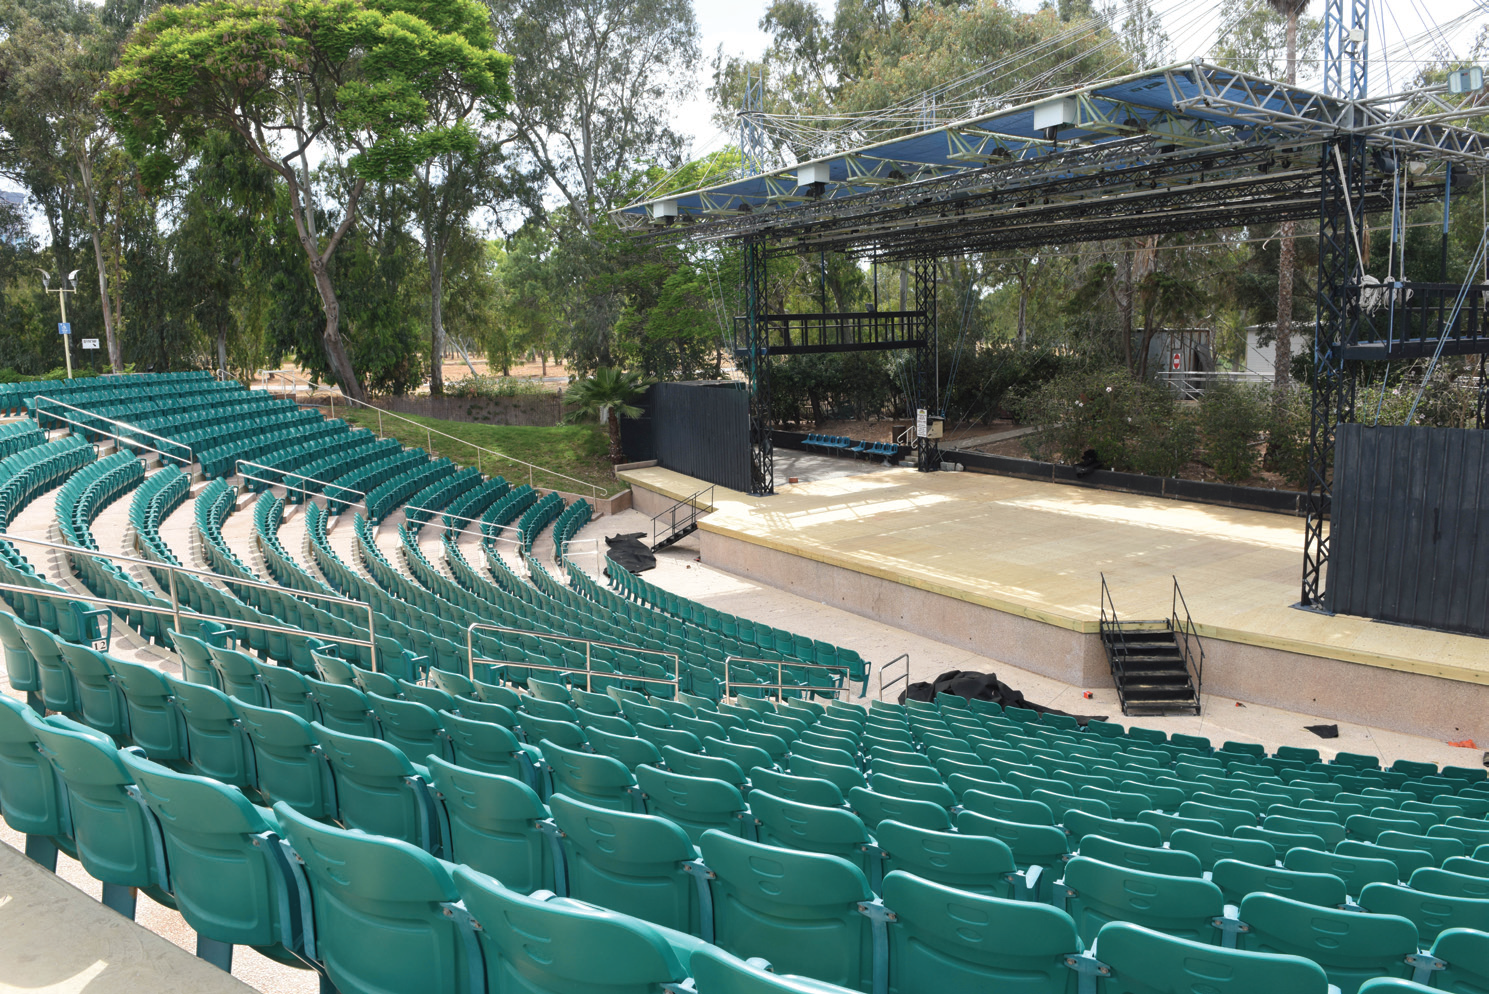 The Wohl Amphitheater